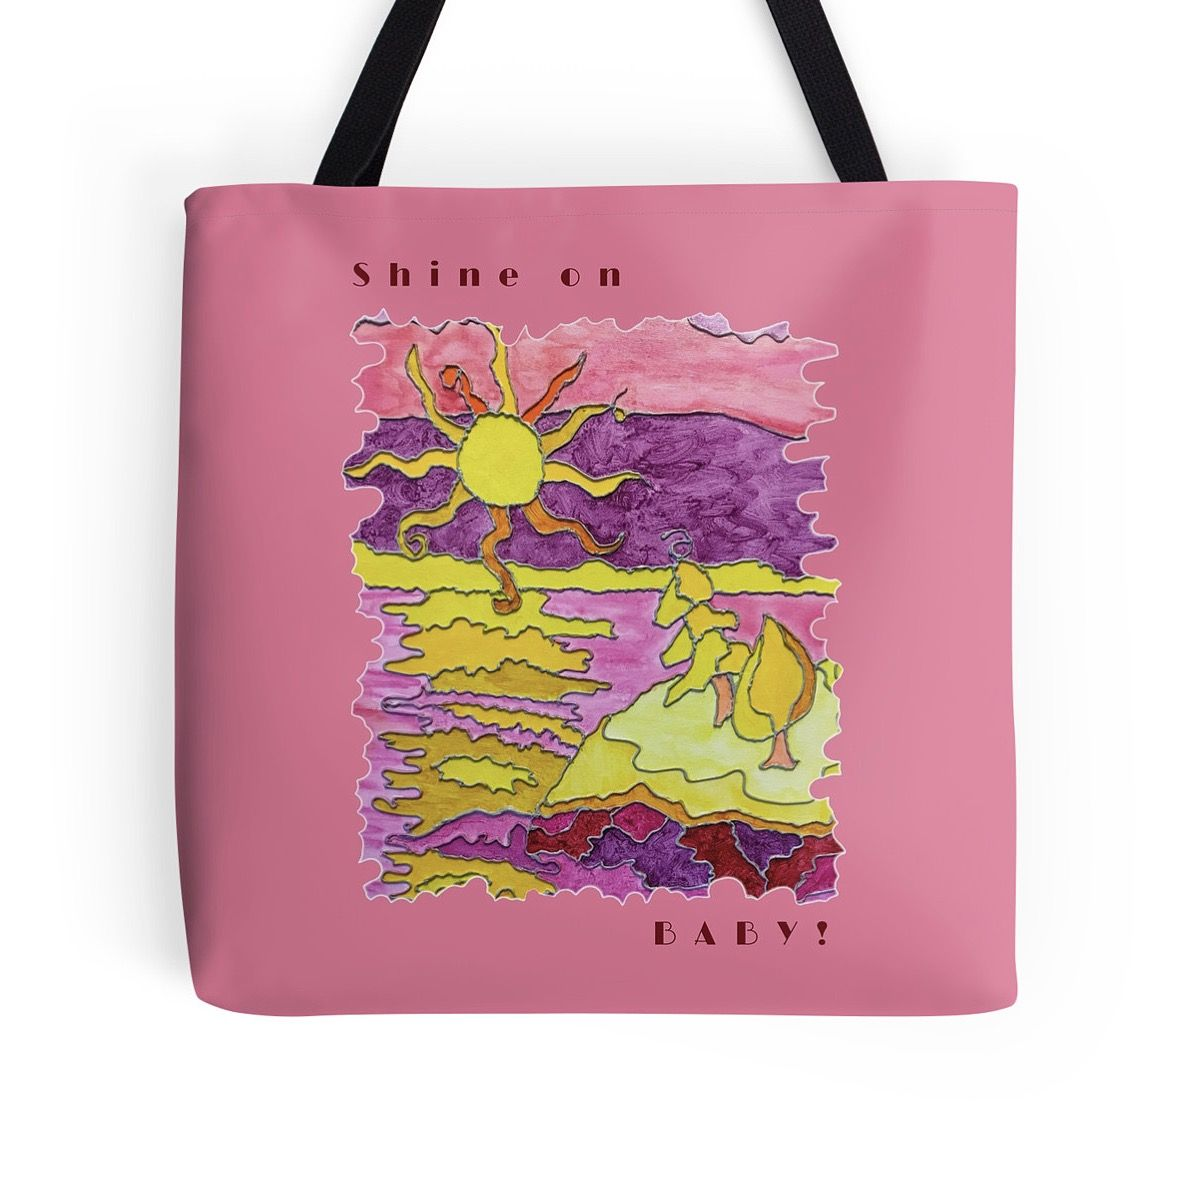 Shine On Baby! - Funny pink beach tote bag with sunny beach scene in faux stained-glass look with humorous quote.